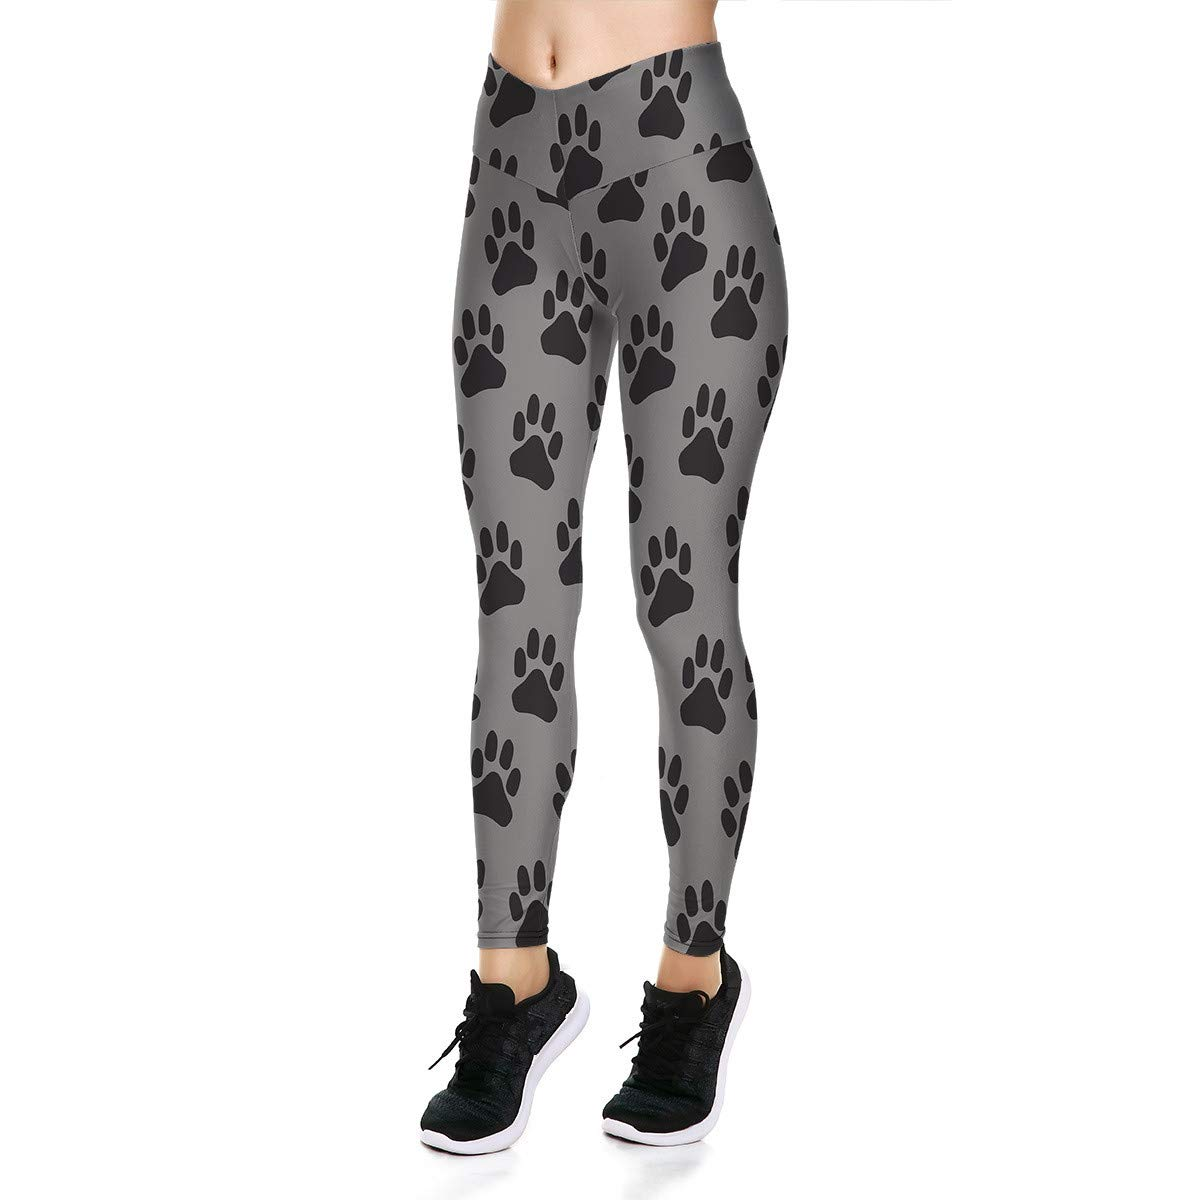 Fanii Quare Women's High Waist Dri-Fit Running Tights Printed Training Compression Workout Pants Dog Paw S